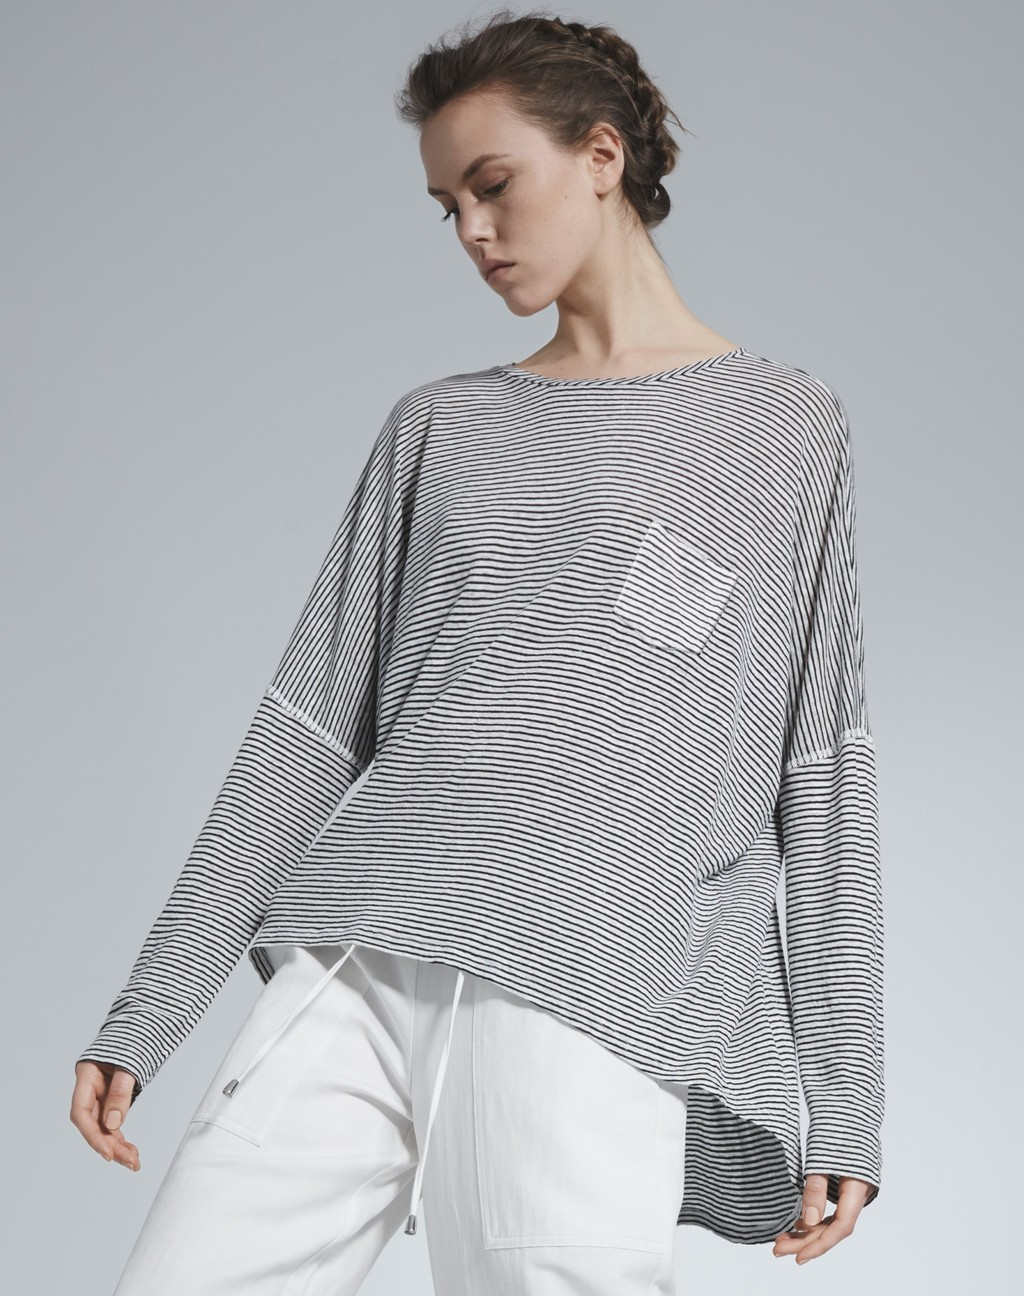 Oversized Slouchy Tee Soft White/Black - neckline: round neck; sleeve style: dolman/batwing; pattern: plain; length: below the bottom; style: t-shirt; predominant colour: light grey; occasions: casual; fibres: linen - mix; fit: loose; sleeve length: long sleeve; pattern type: fabric; texture group: jersey - stretchy/drapey; season: s/s 2016; wardrobe: basic